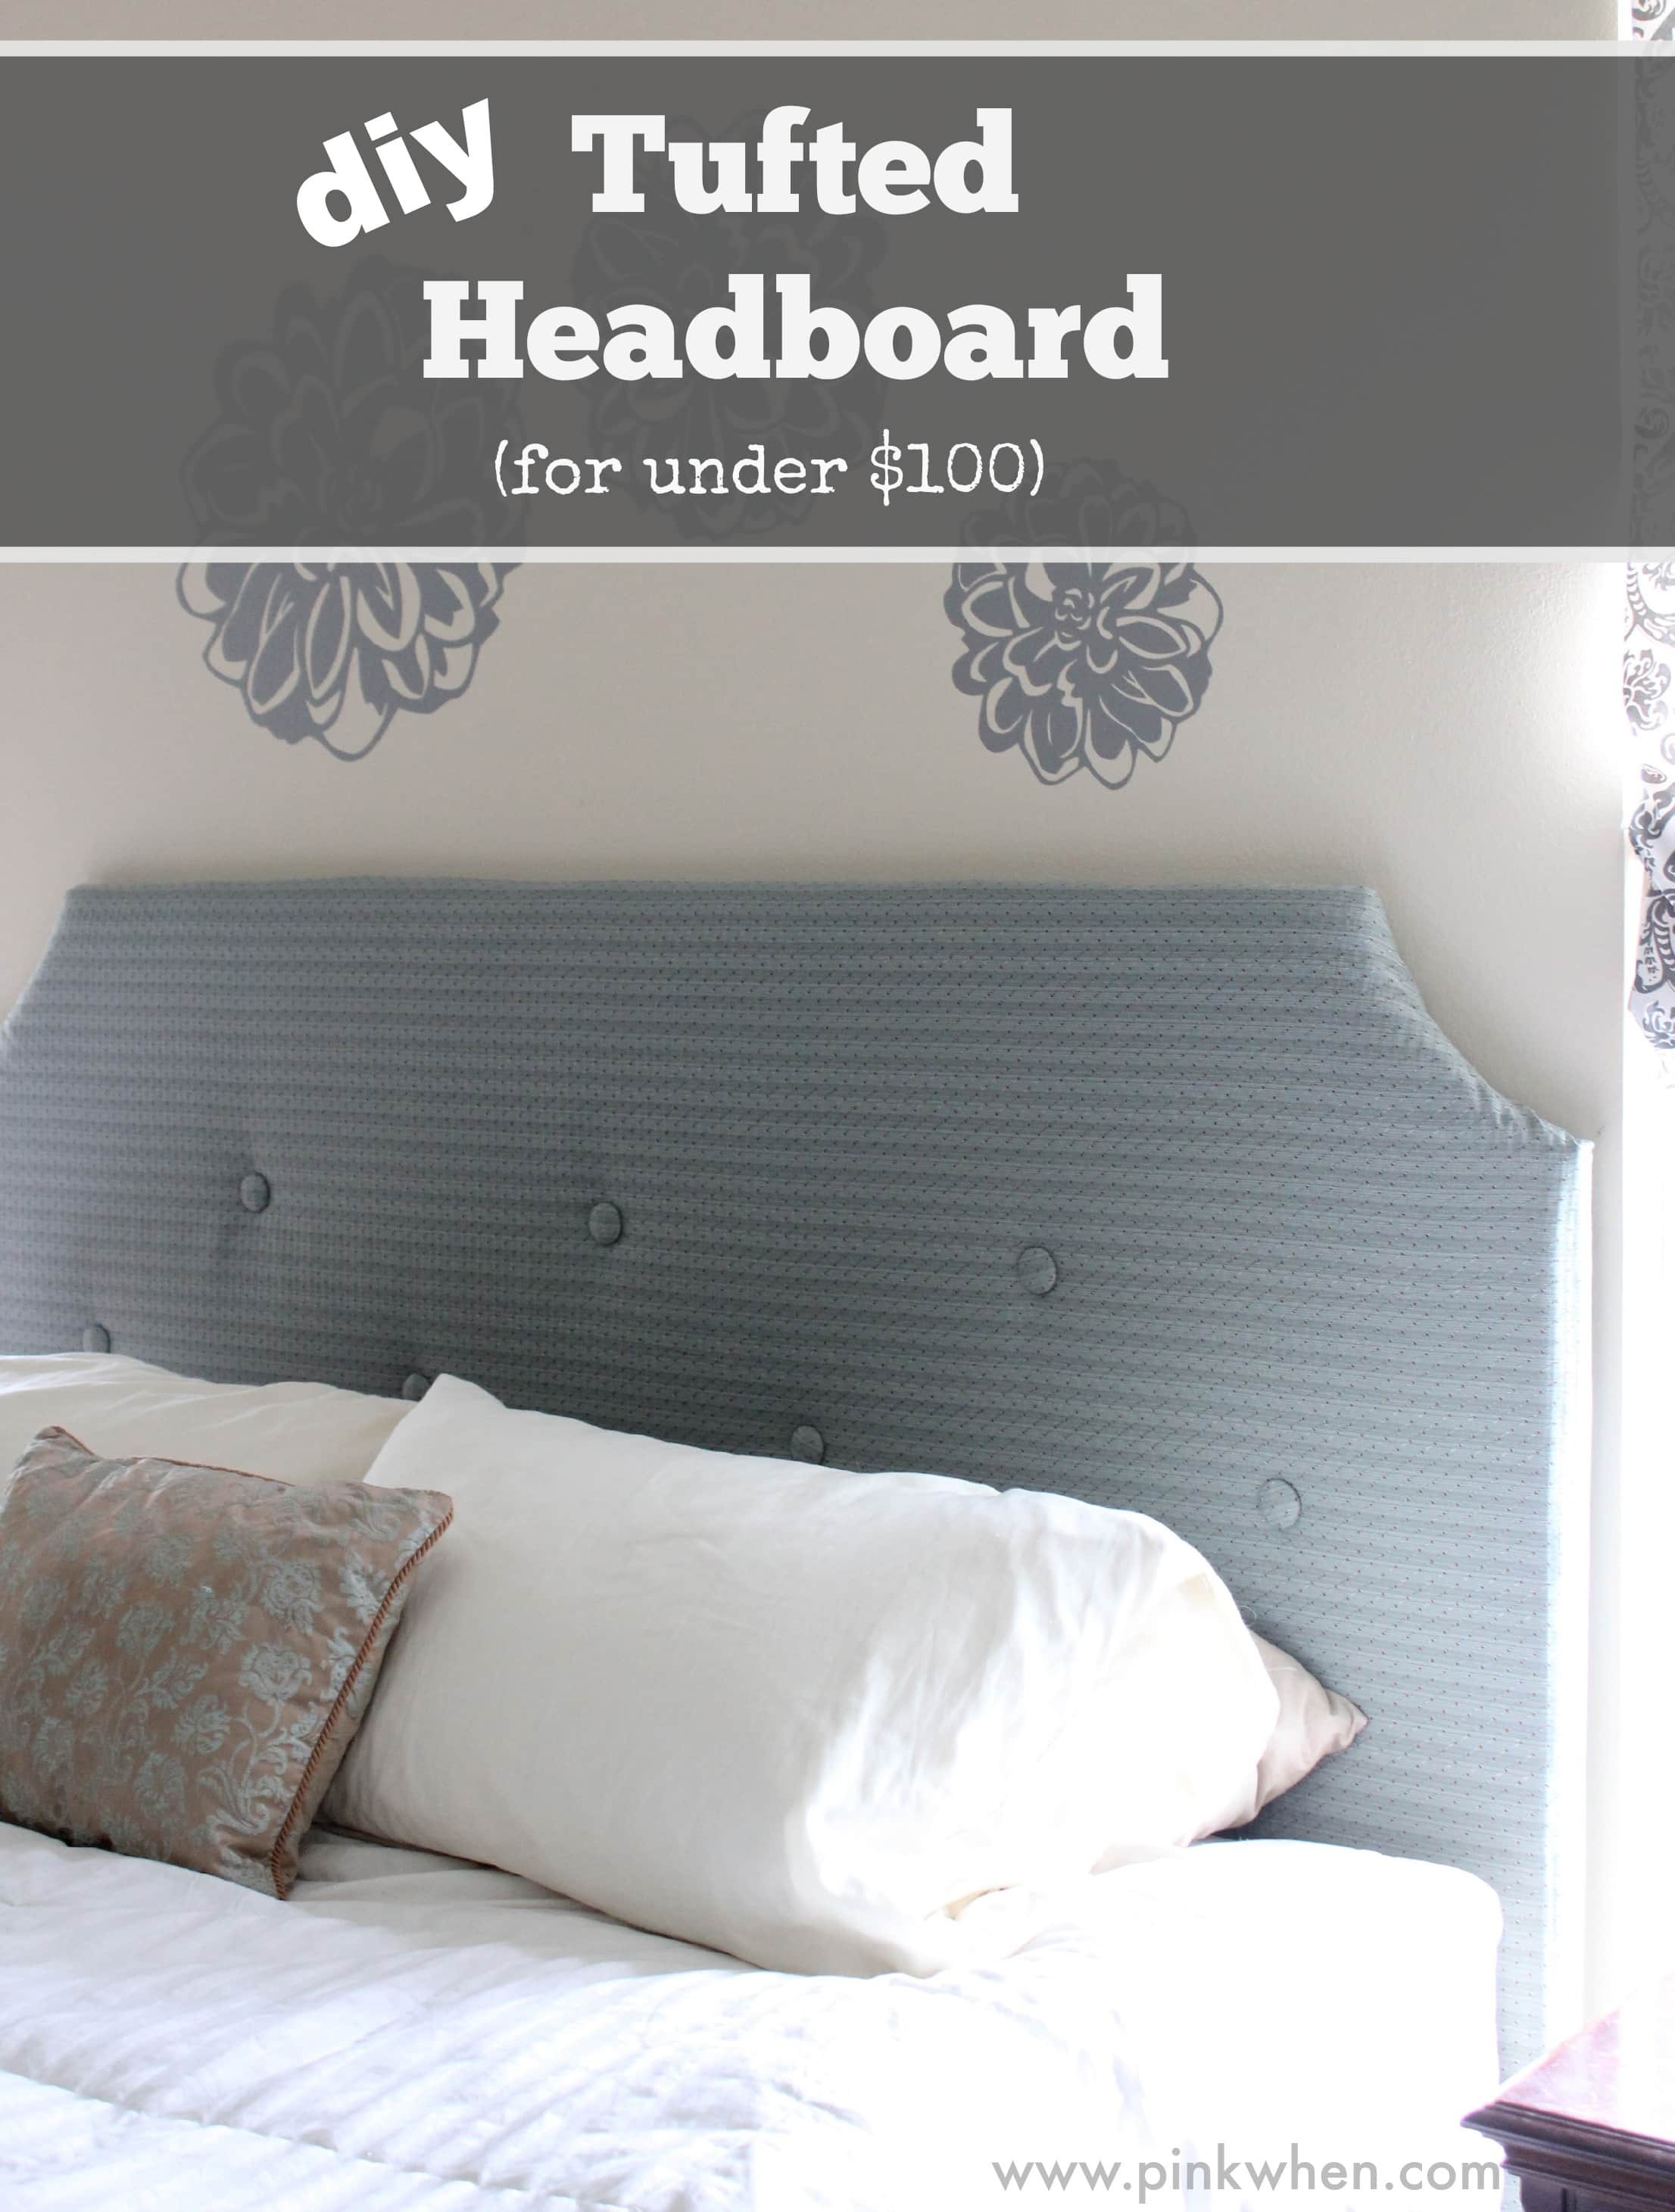 DIY Tufted Headboard for under 0 via PinkWhen.com